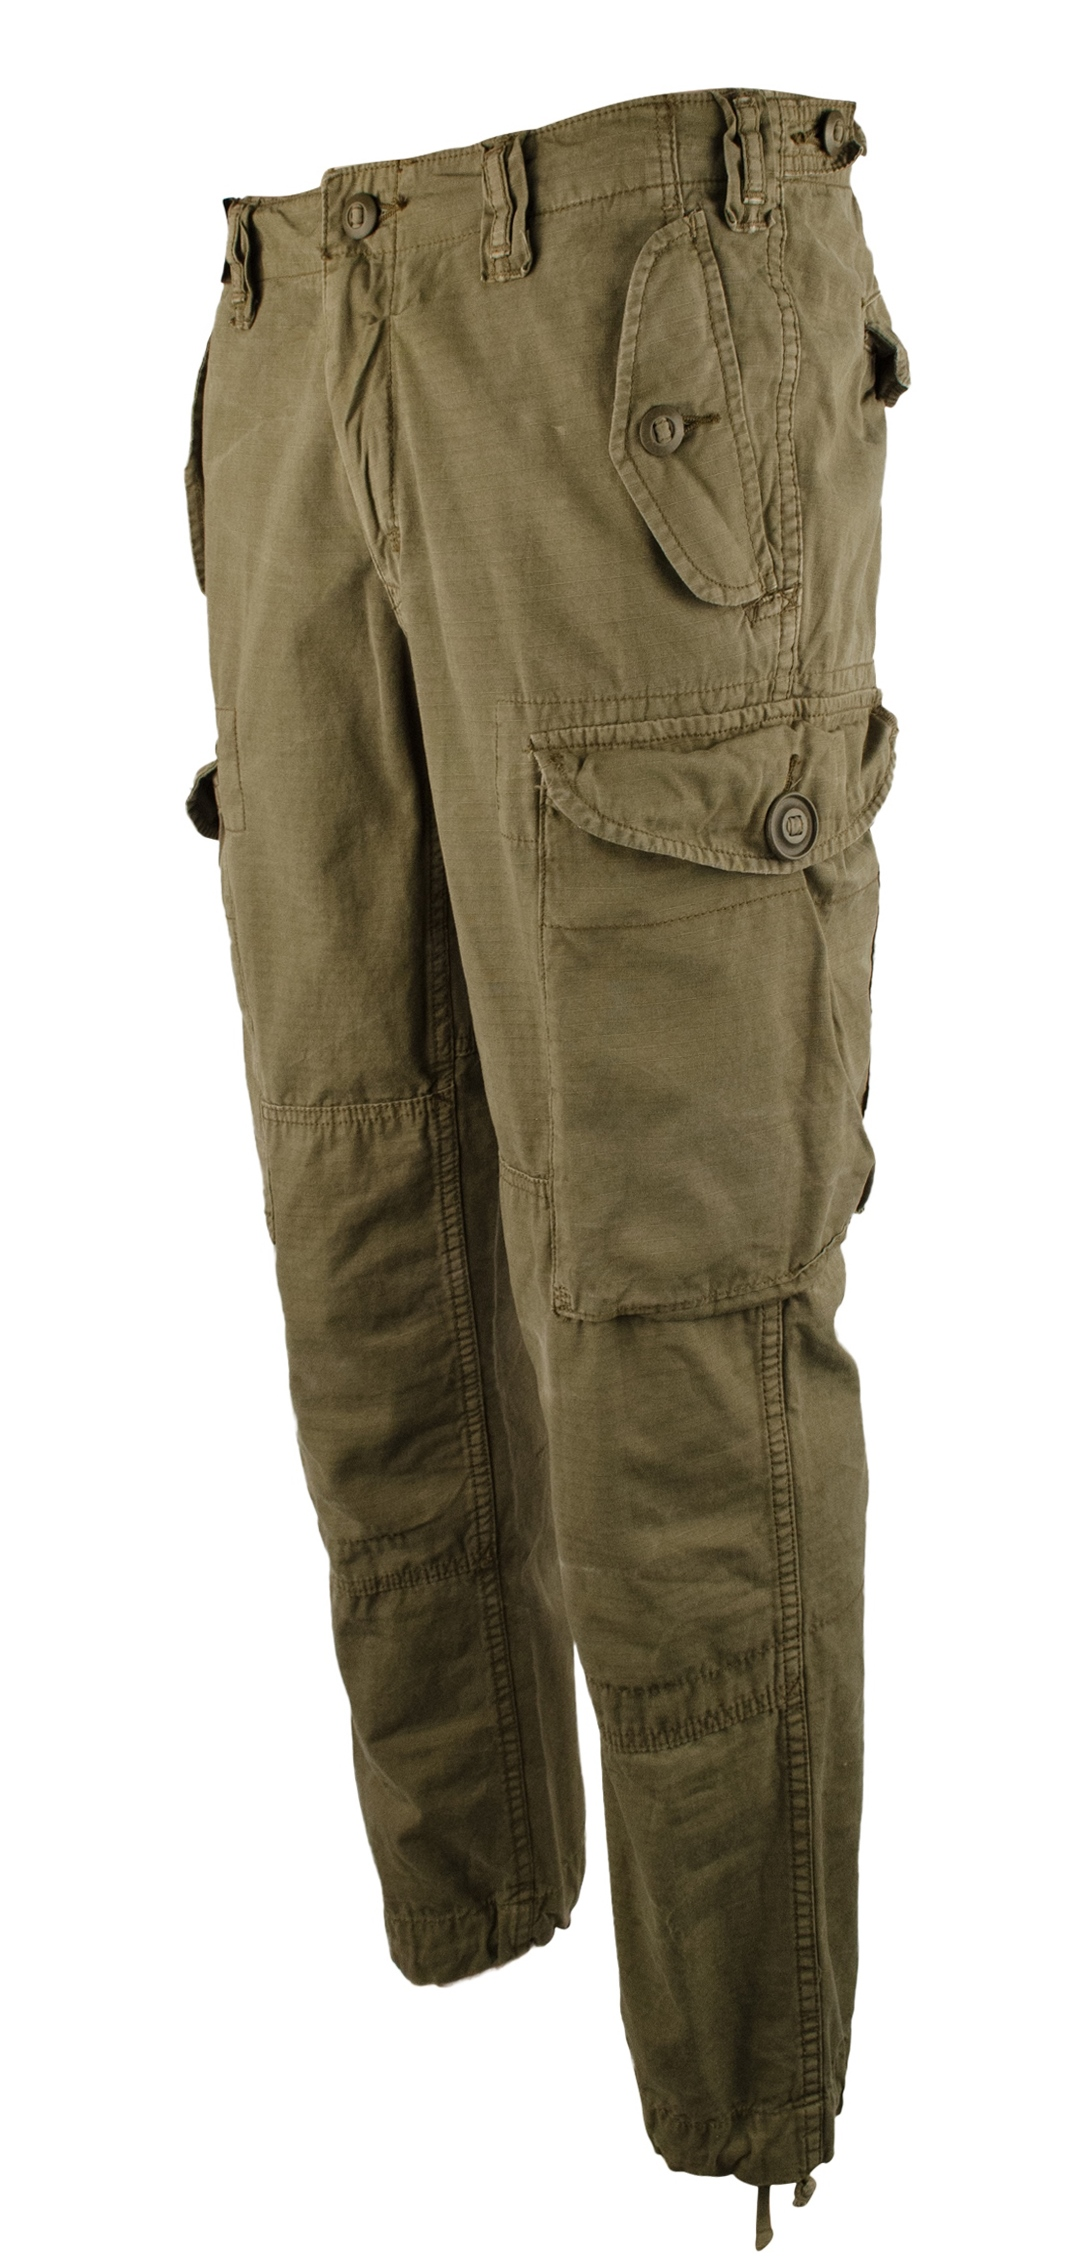 Find polo cargo pants from a vast selection of Clothing for Men. Get great deals on eBay!